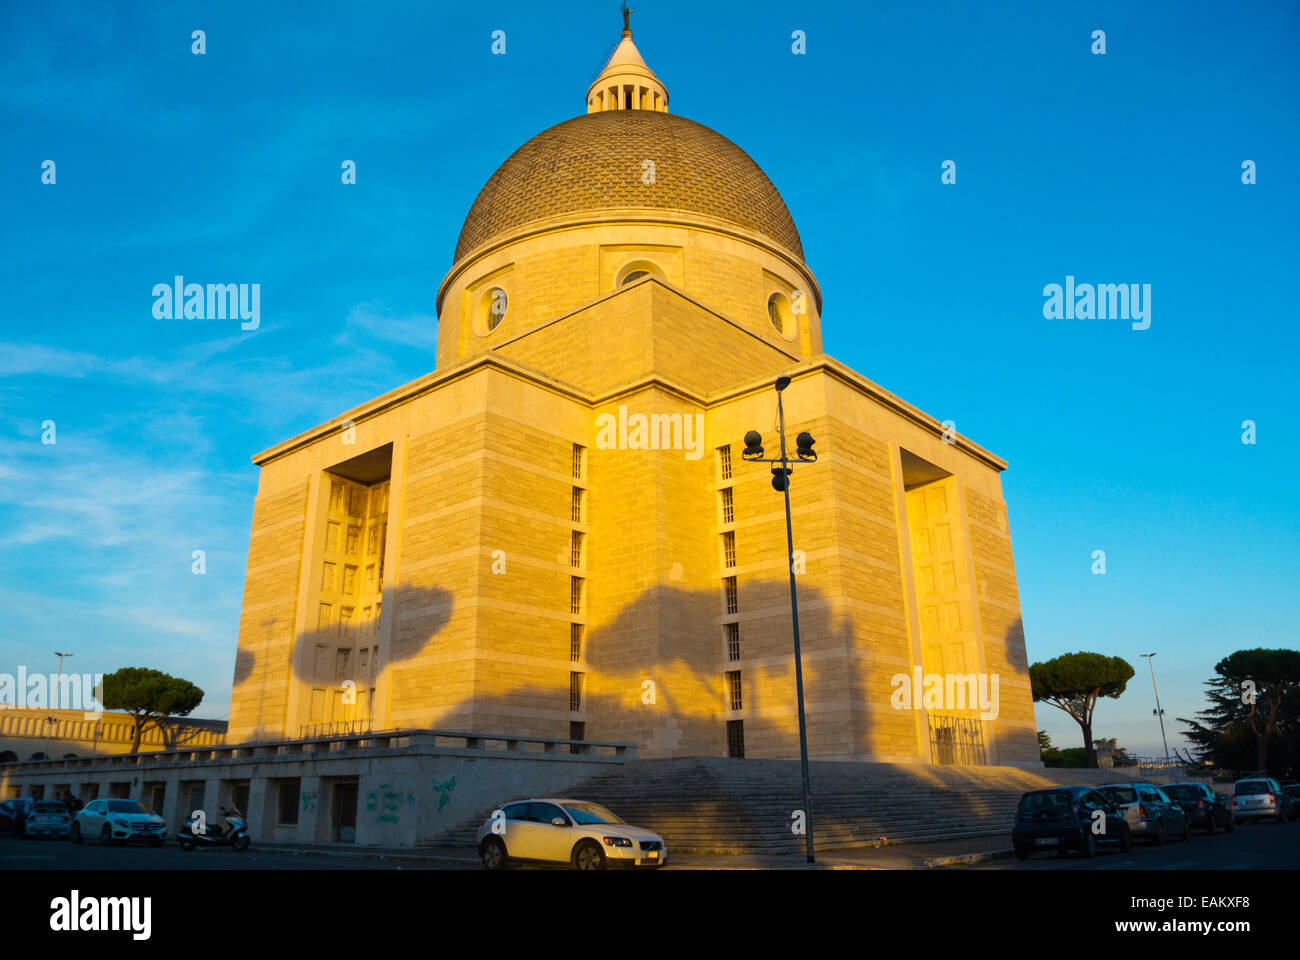 Basilica parrocchiale dei Santi Pietro e Paolo, Basilica of Peter and Paul, EUR government and financial district, - Stock Image